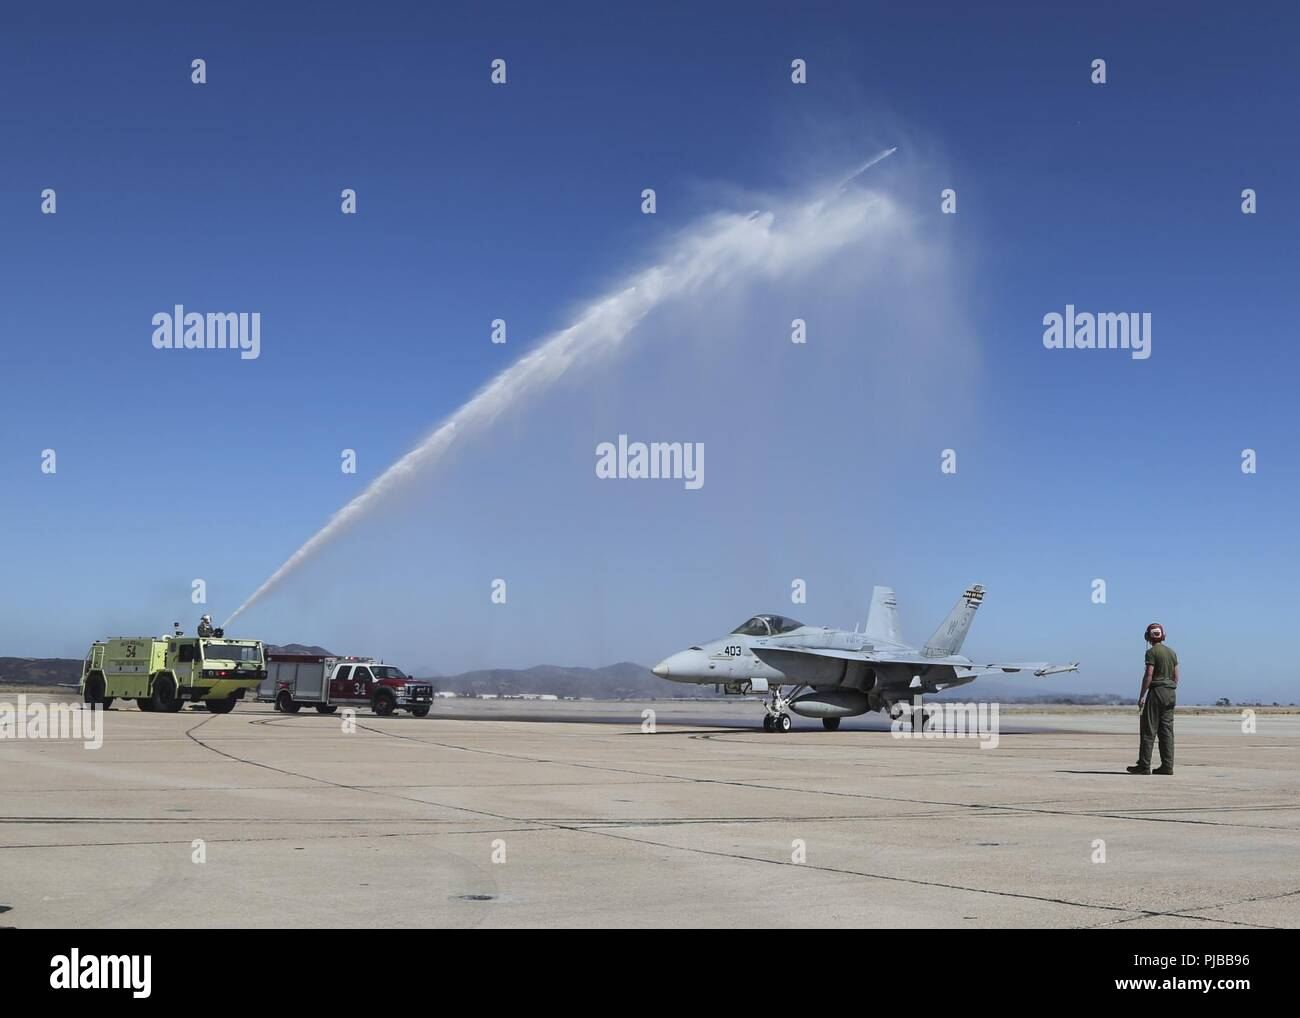 Maj. Gen. Mark R. Wise, the commanding general for 3rd Marine Aircraft Wing, is sprayed with water to celebrate his return from his final flight in an F/A-18C Hornet at Marine Corps Air Station Miramar, San Diego, Calif., July 02. Maj. Gen. Wise flew for the last time as the commanding general of 3rd MAW. Stock Photo